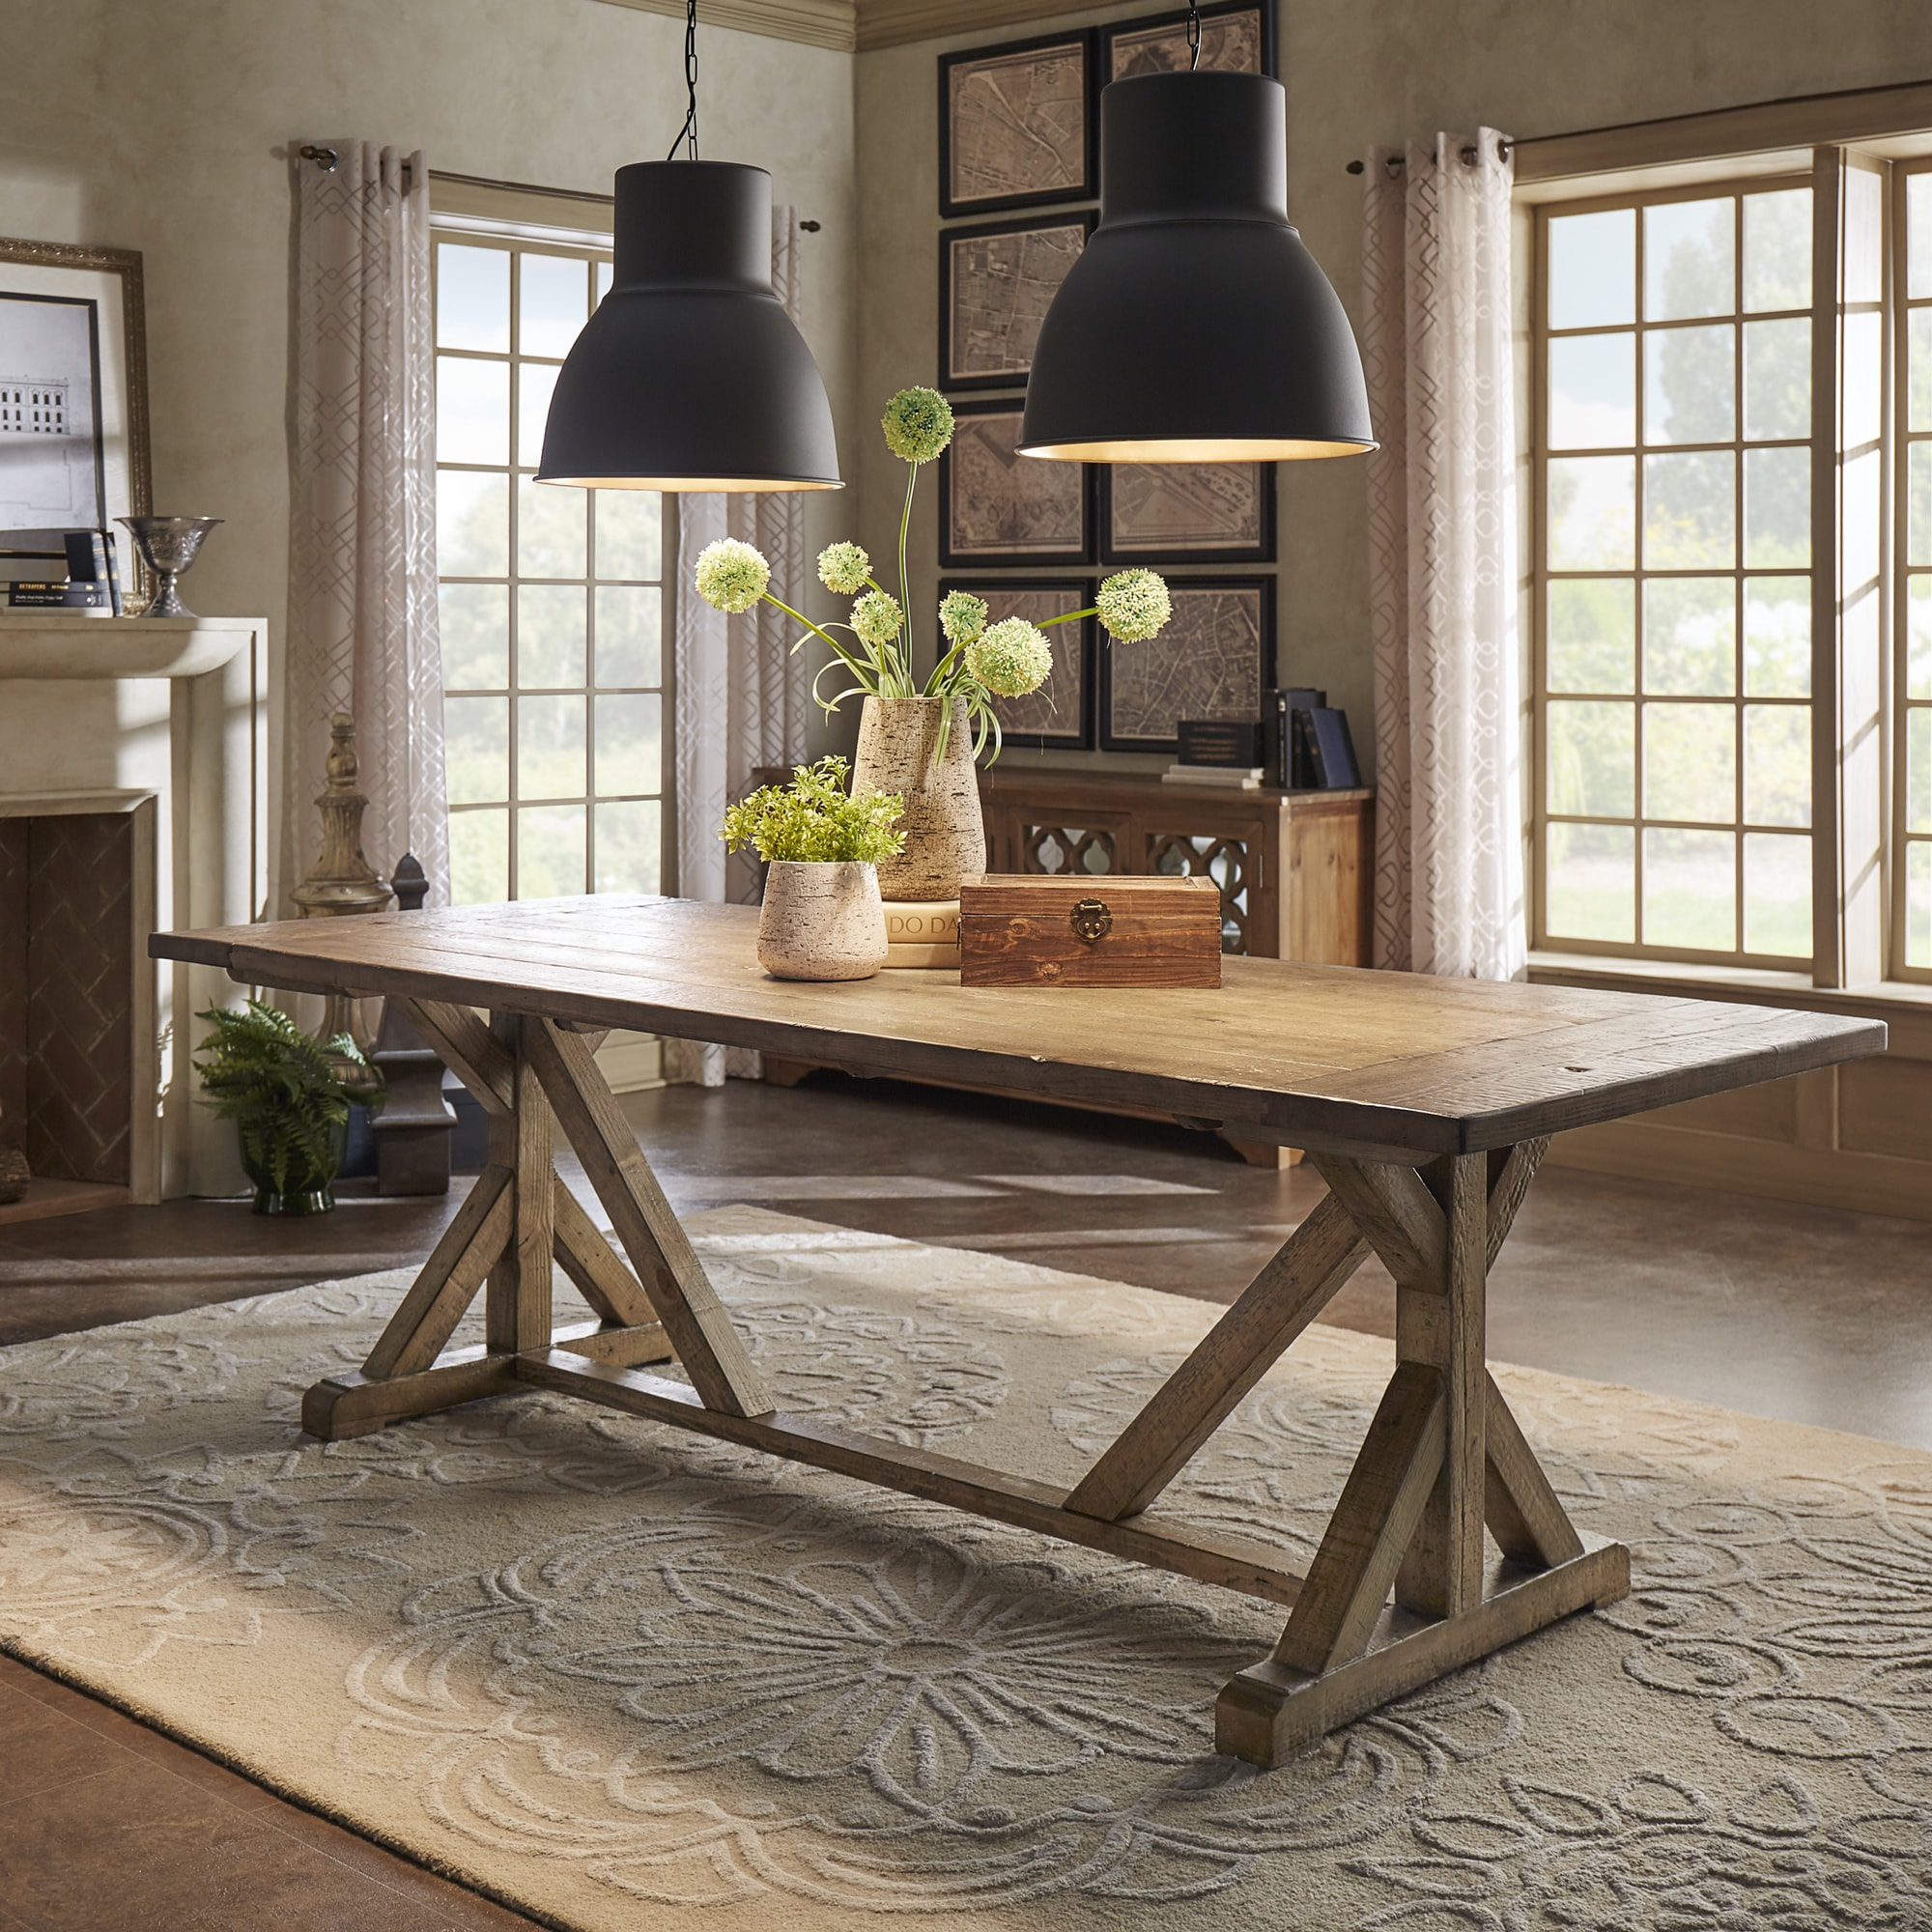 Paloma Rustic Reclaimed Wood Rectangular Trestle Farm Table By Inspire Q Artisan On Sale Overstock 11960213